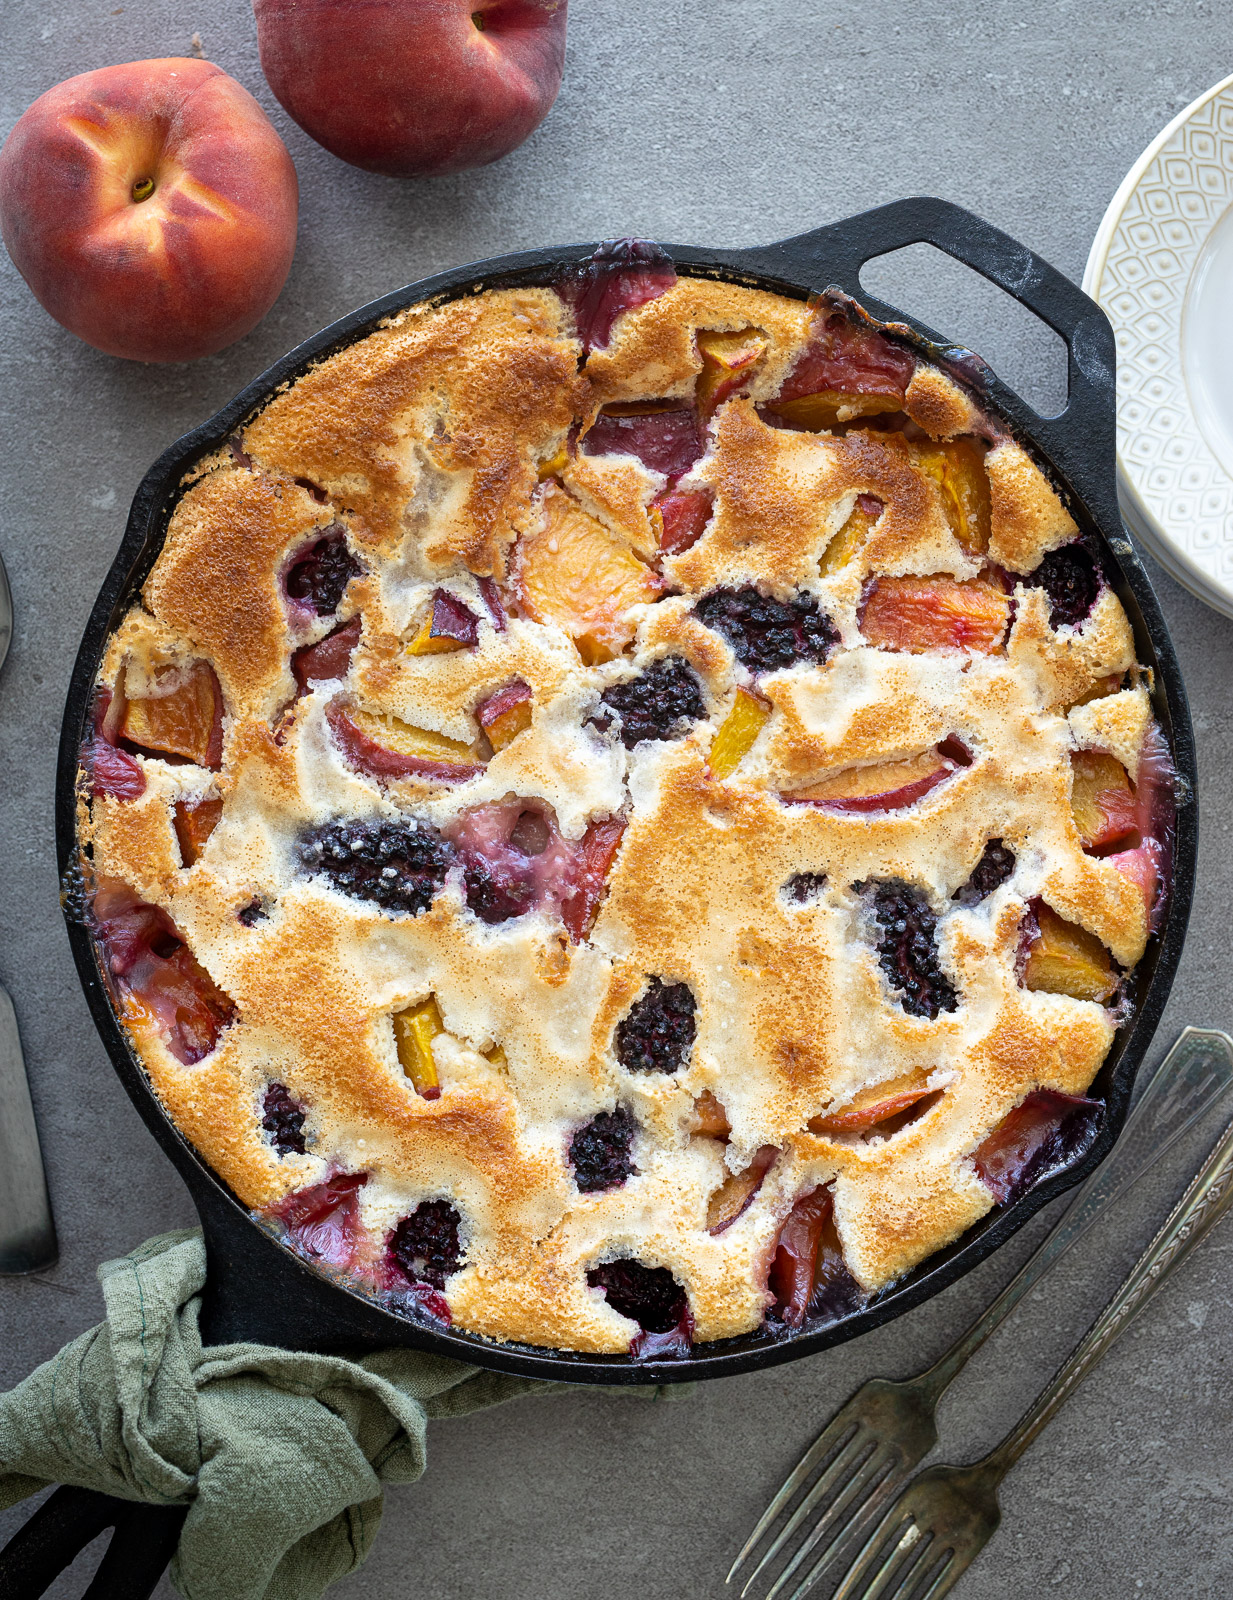 Southern Peach Blackberry Cobbler in a cast iron skillet.